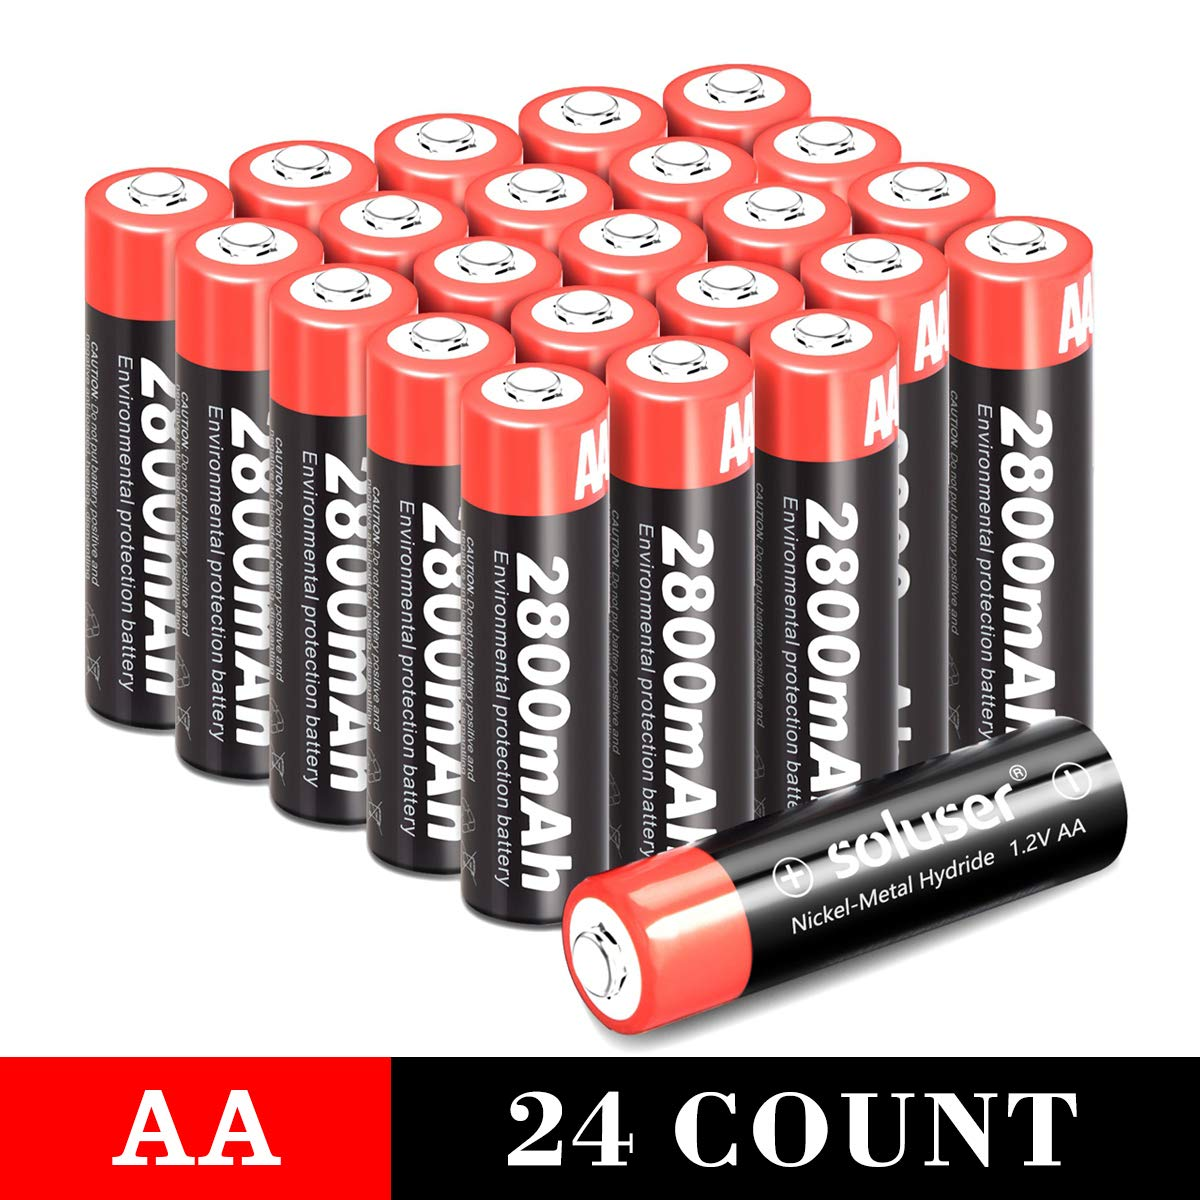 AA Rechargeable Batteries 2800mAh Rechargeable AA Batteries AA High-Capacity AA Batteries Rechargeable 1.2V Ni-MH Low Self Discharge 24-Pack